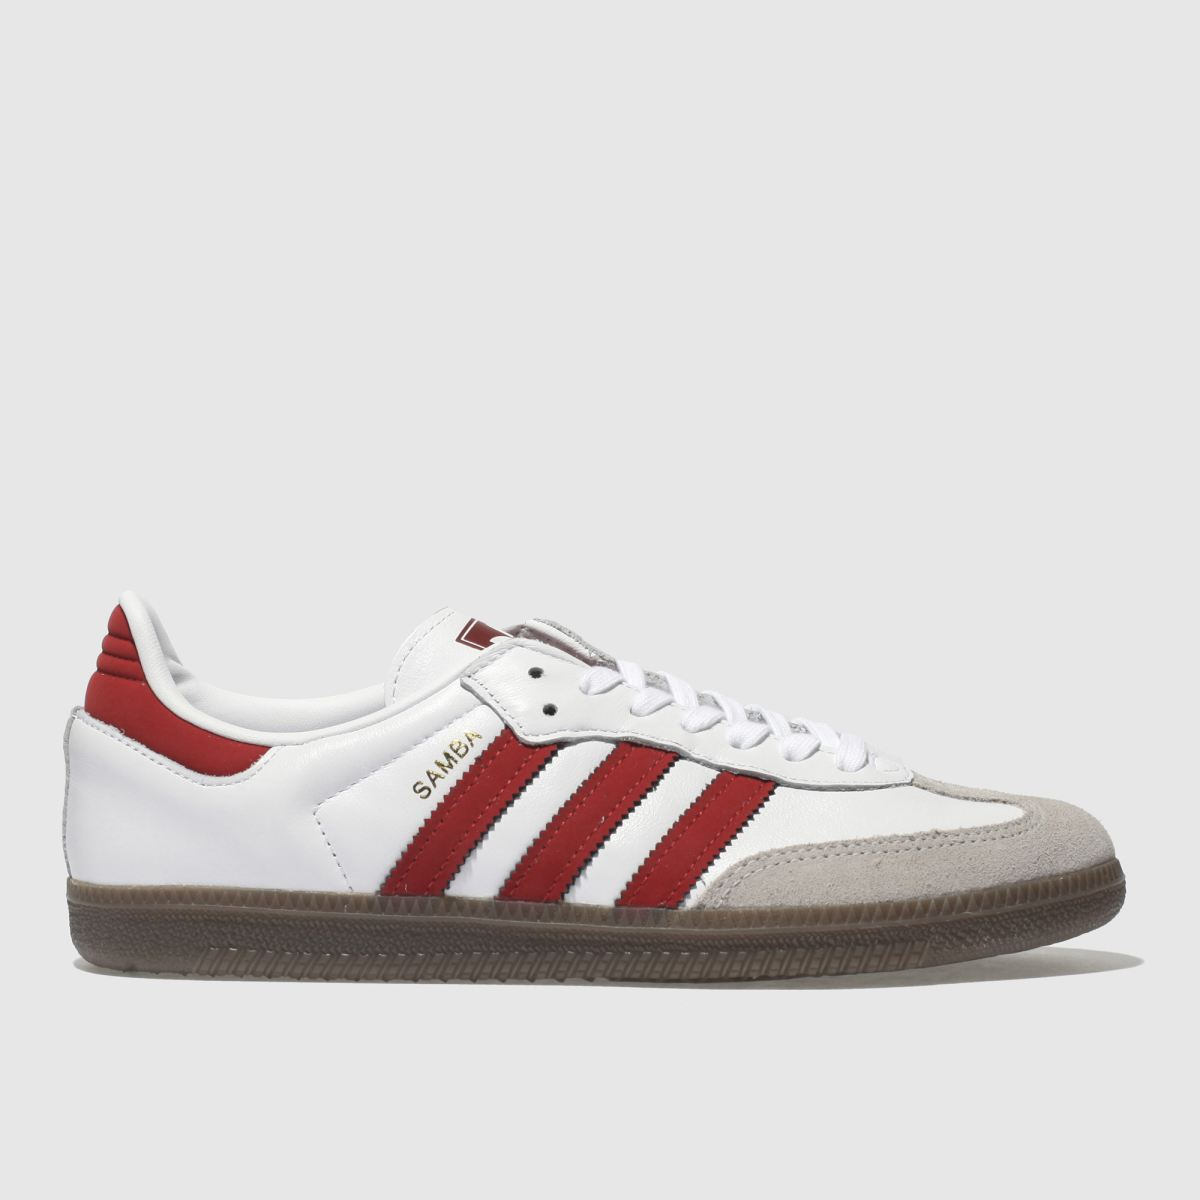 Adidas White & Red Samba Og Trainers